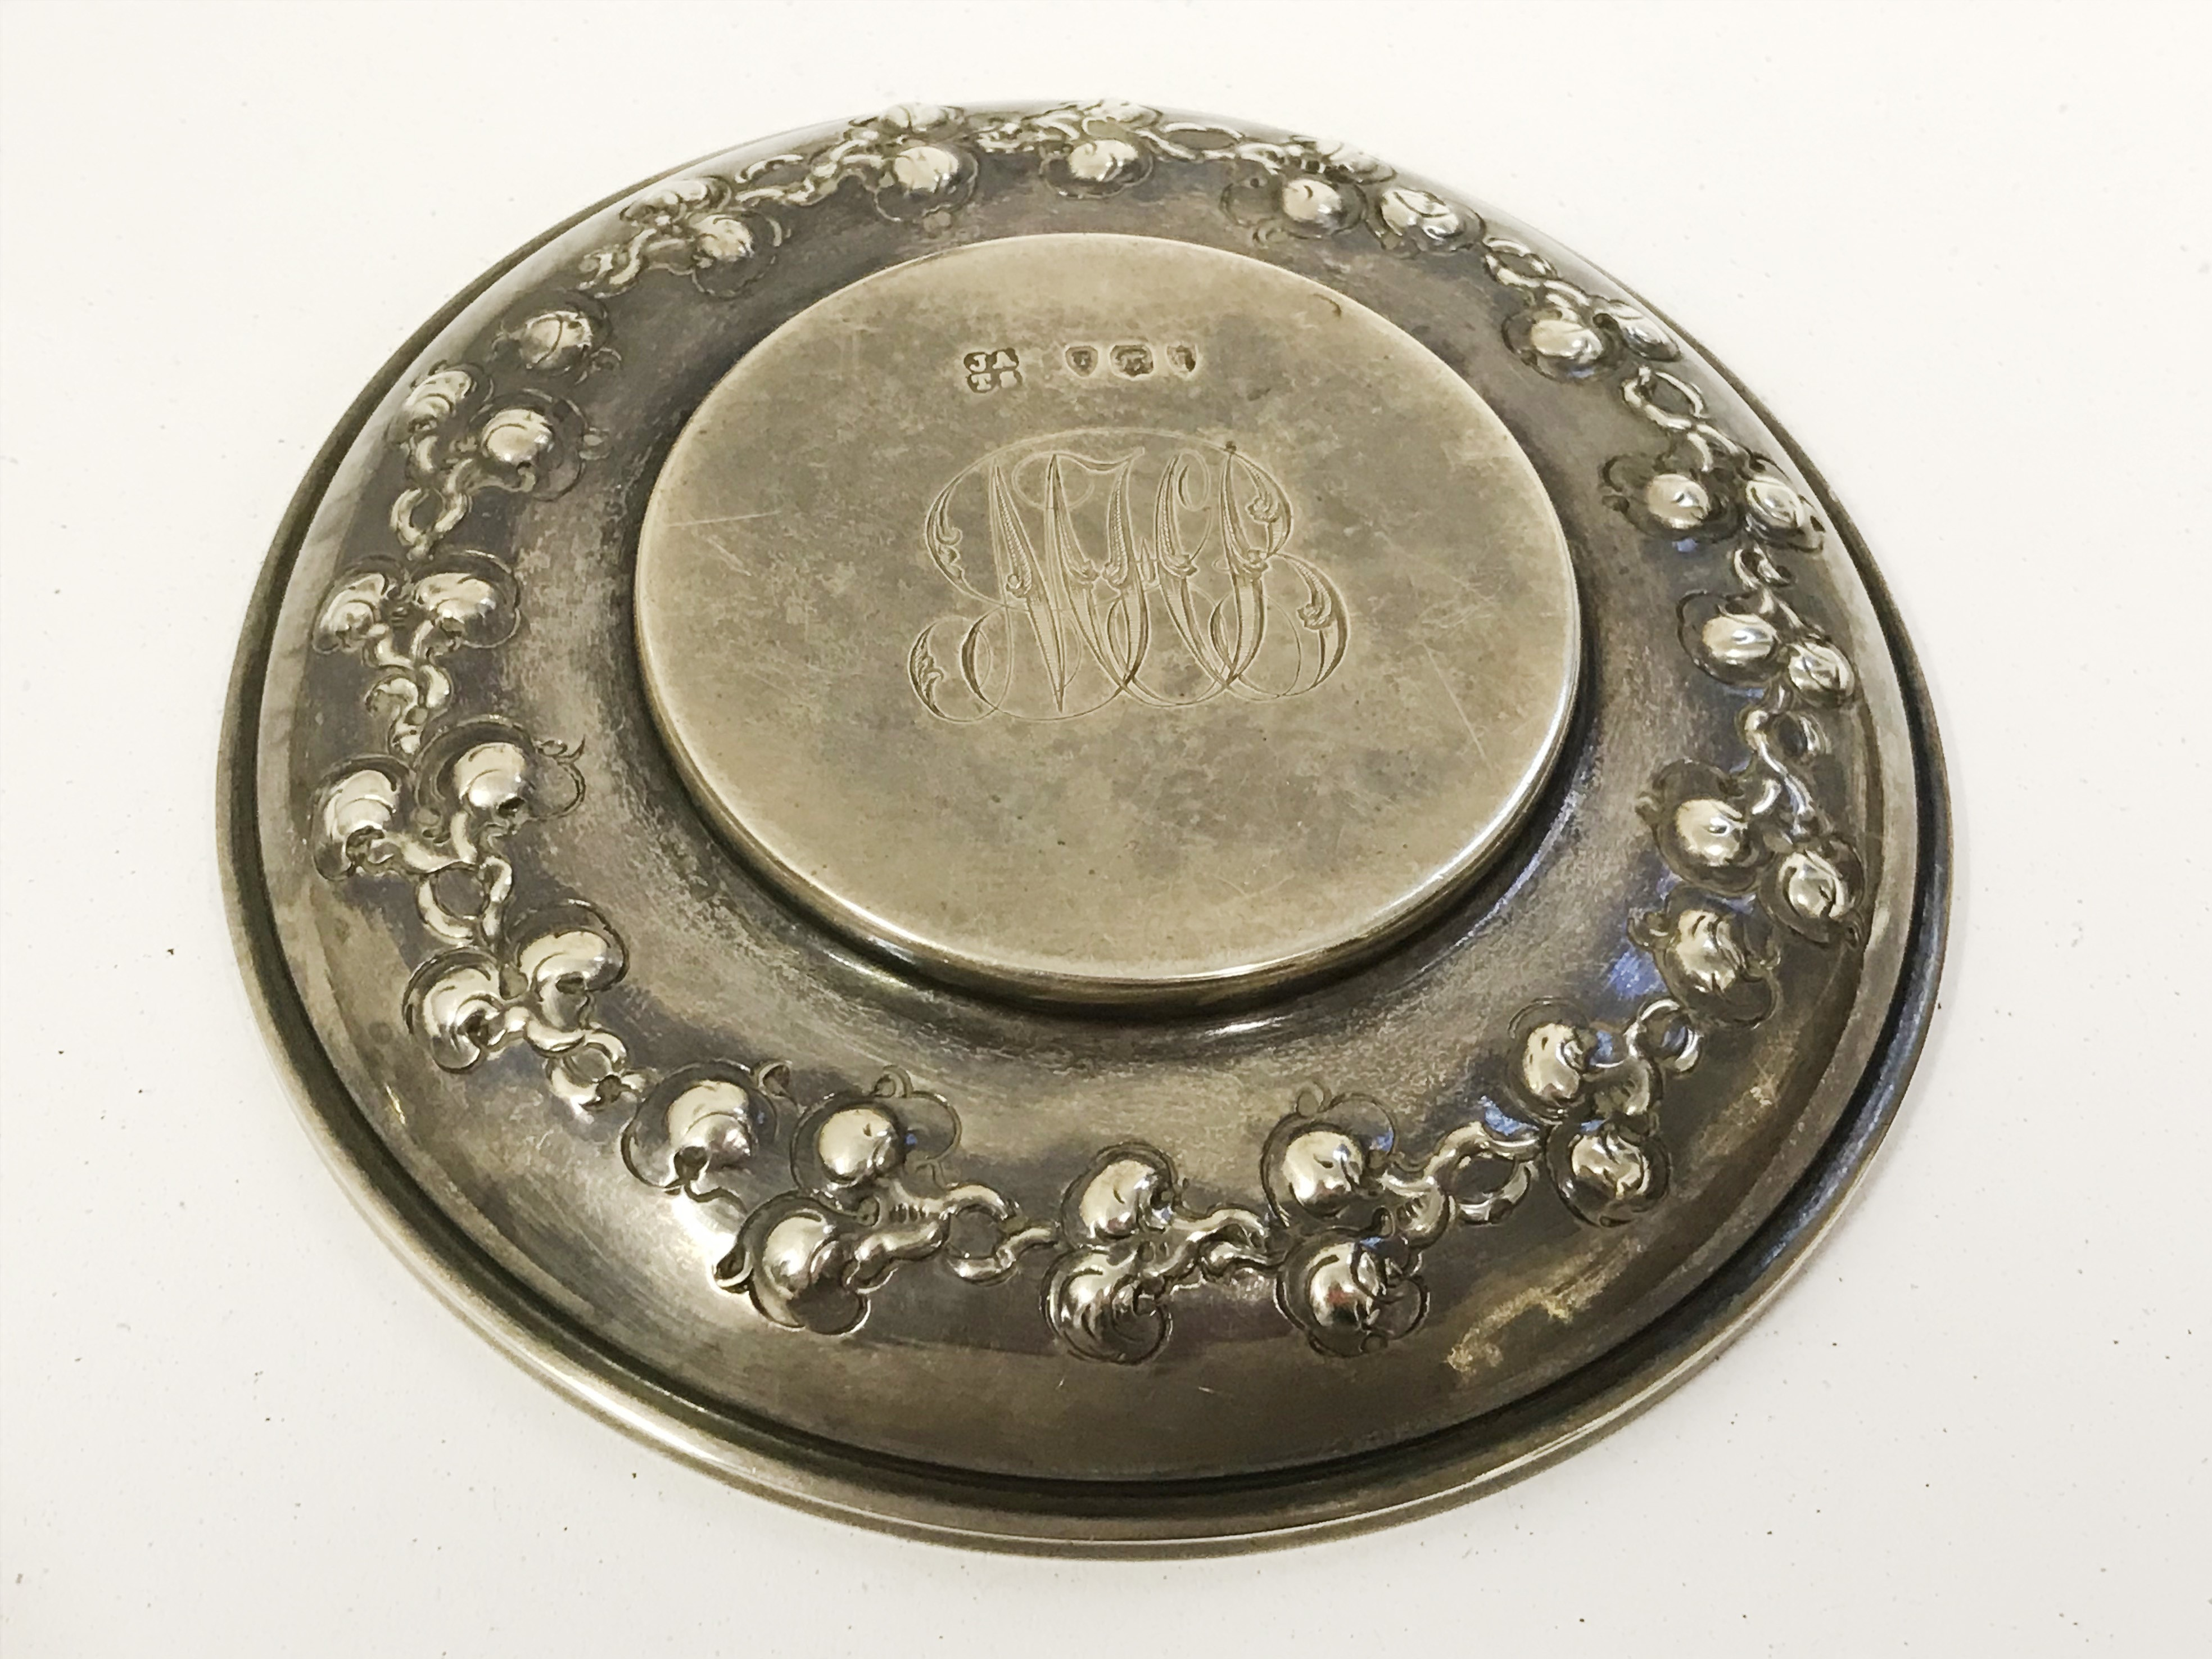 Lot 8 - SMALL GROUP OF SILVER ITEMS INC WINE TESTING BOWL POSE VASE & PIN DISHES